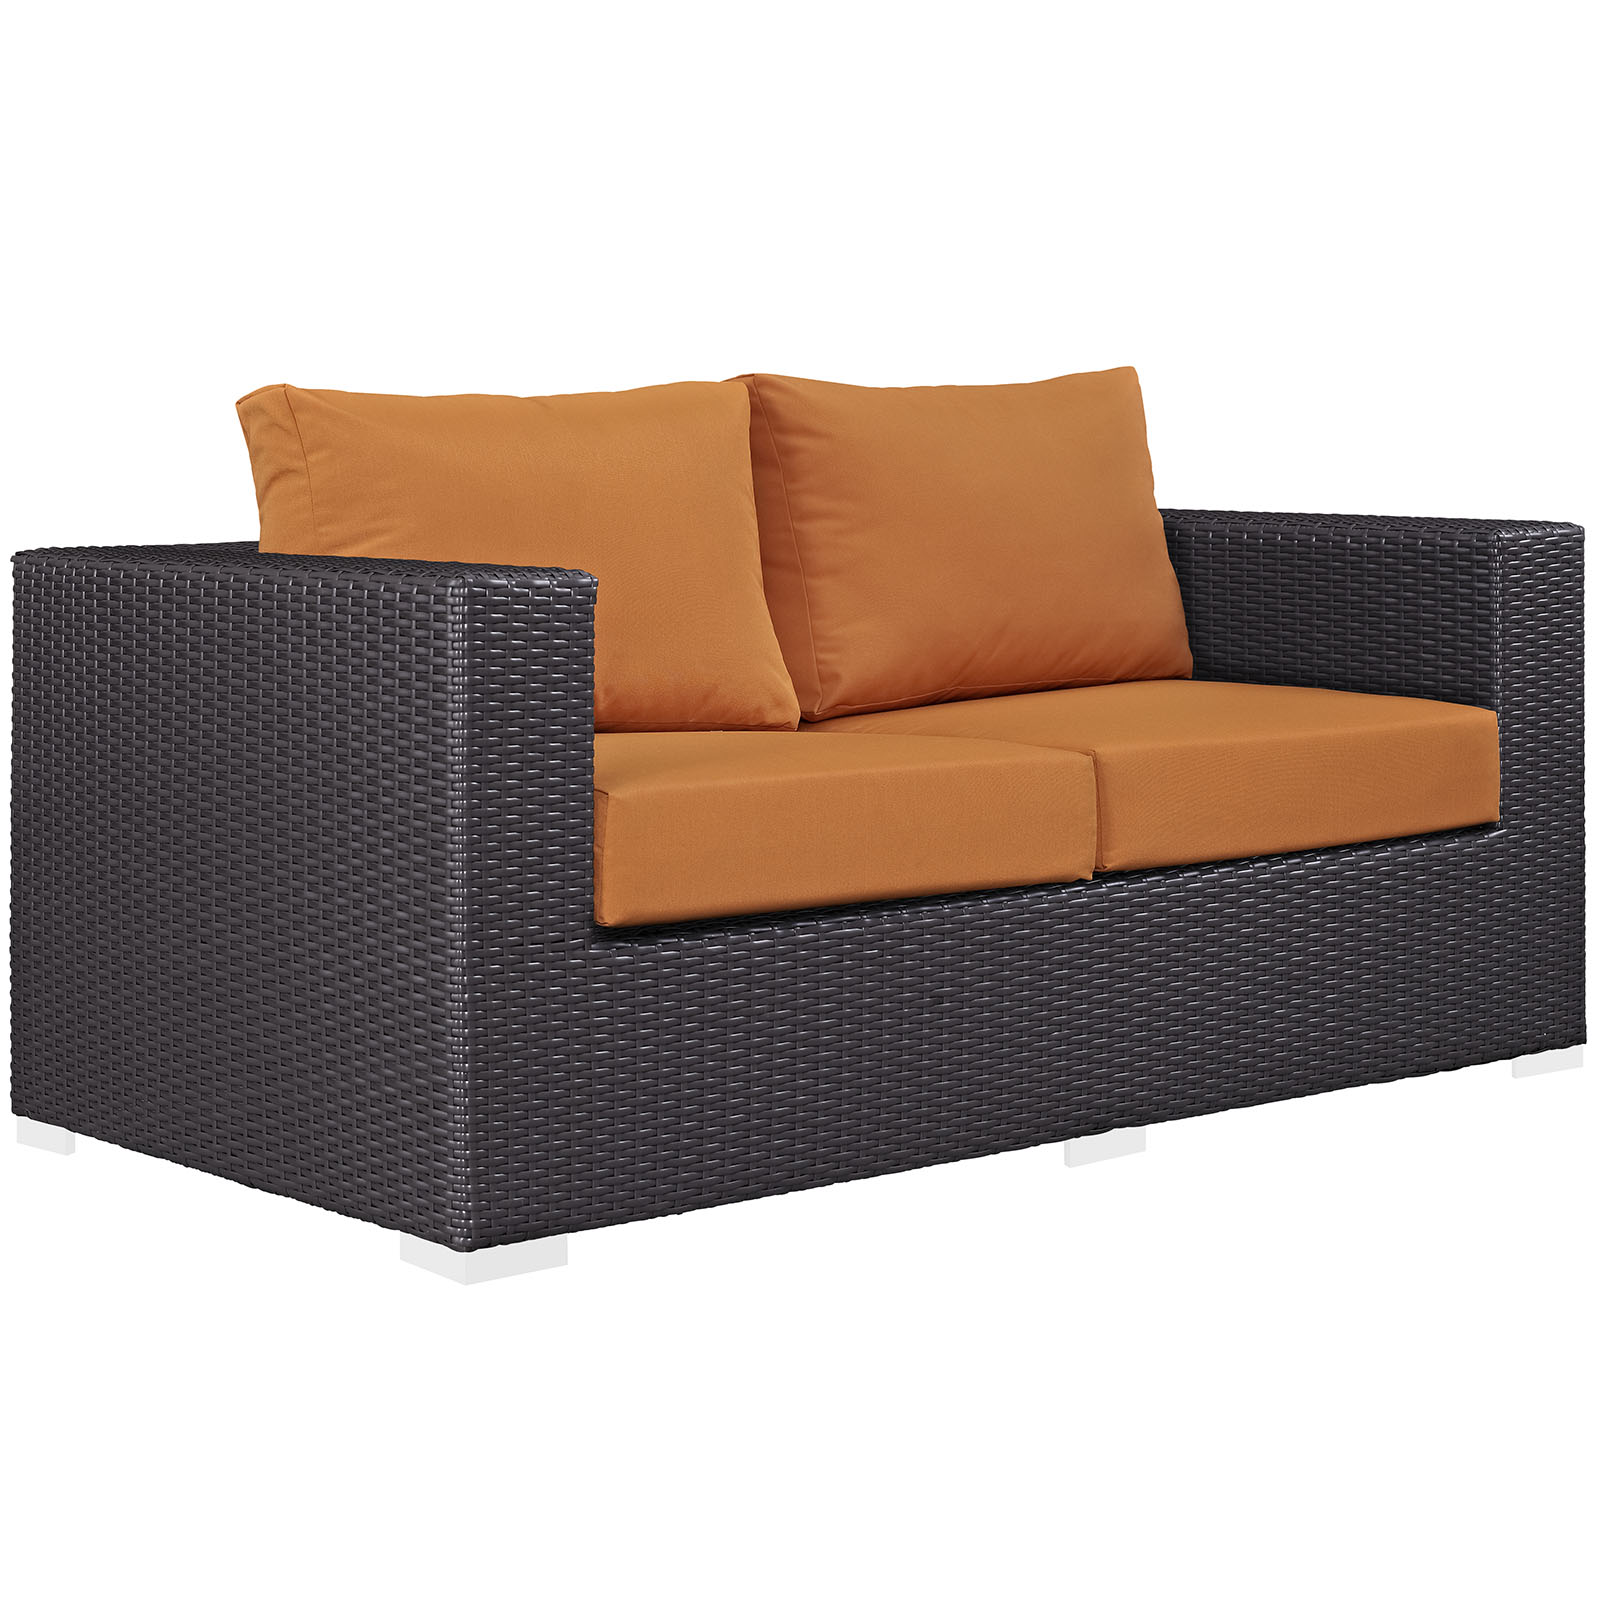 Modern Contemporary Urban Design Outdoor Patio Balcony Loveseat Sofa, Orange, Rattan